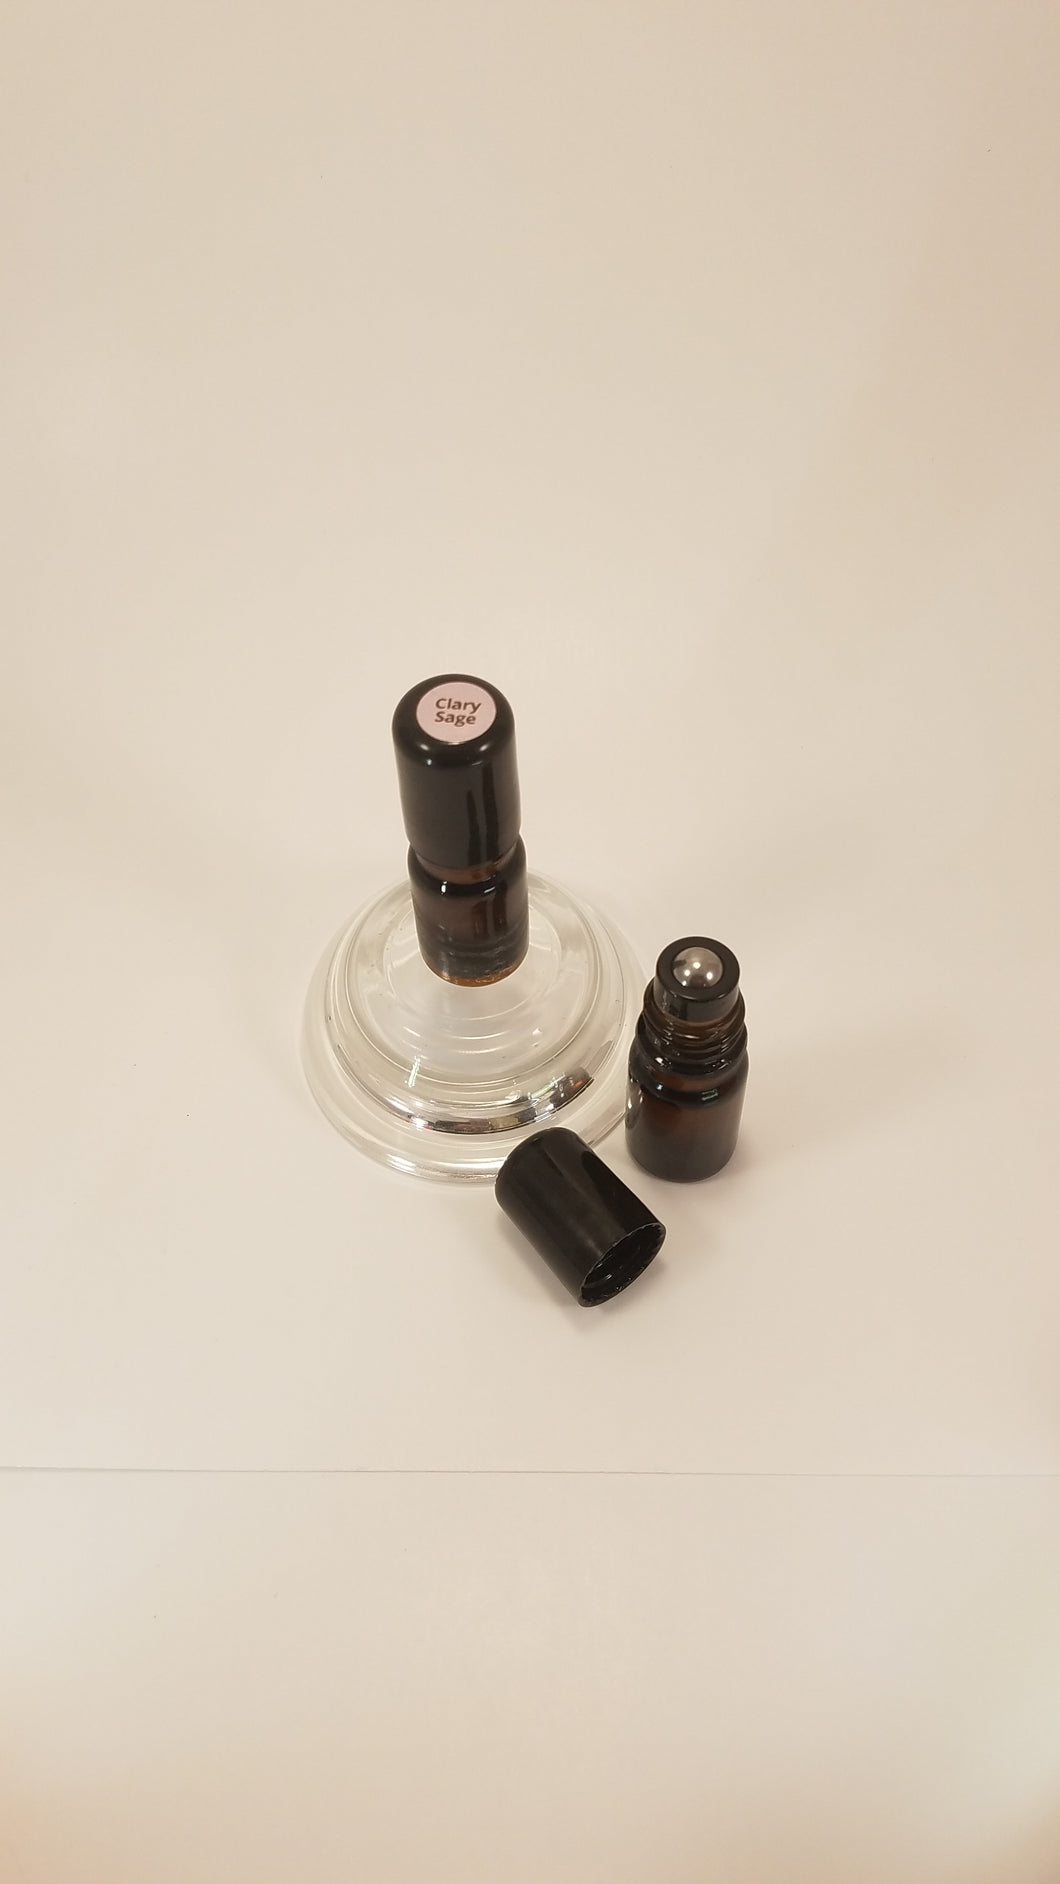 Clary Sage 5ML Essential Oil Roller